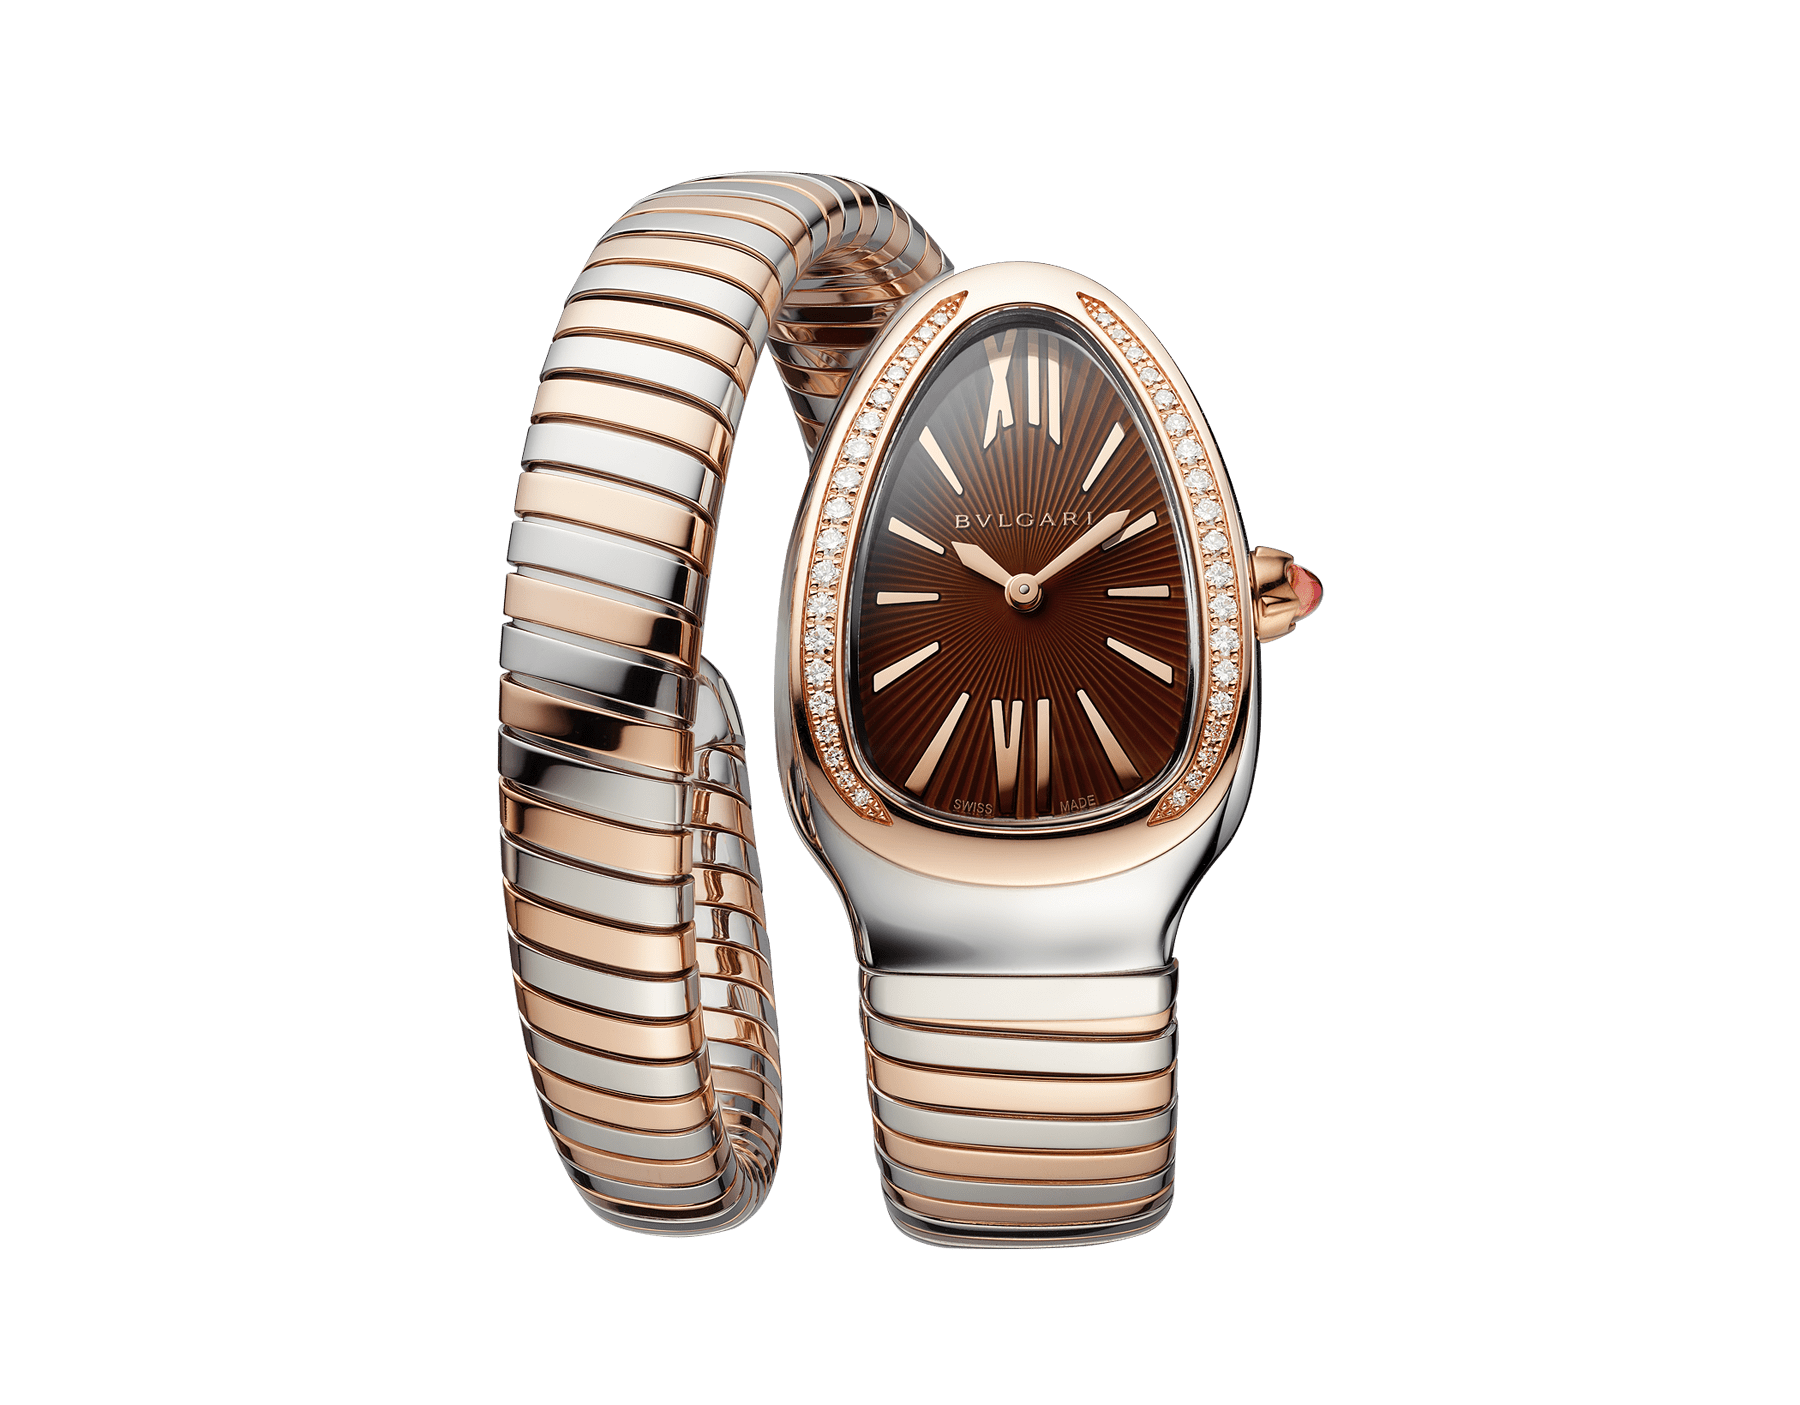 Serpenti Tubogas single spiral watch with stainless steel case, 18 kt rose gold bezel set with brilliant-cut diamonds, brown dial with guilloché soleil treatment, stainless steel and 18 kt rose gold bracelet 103071 image 1